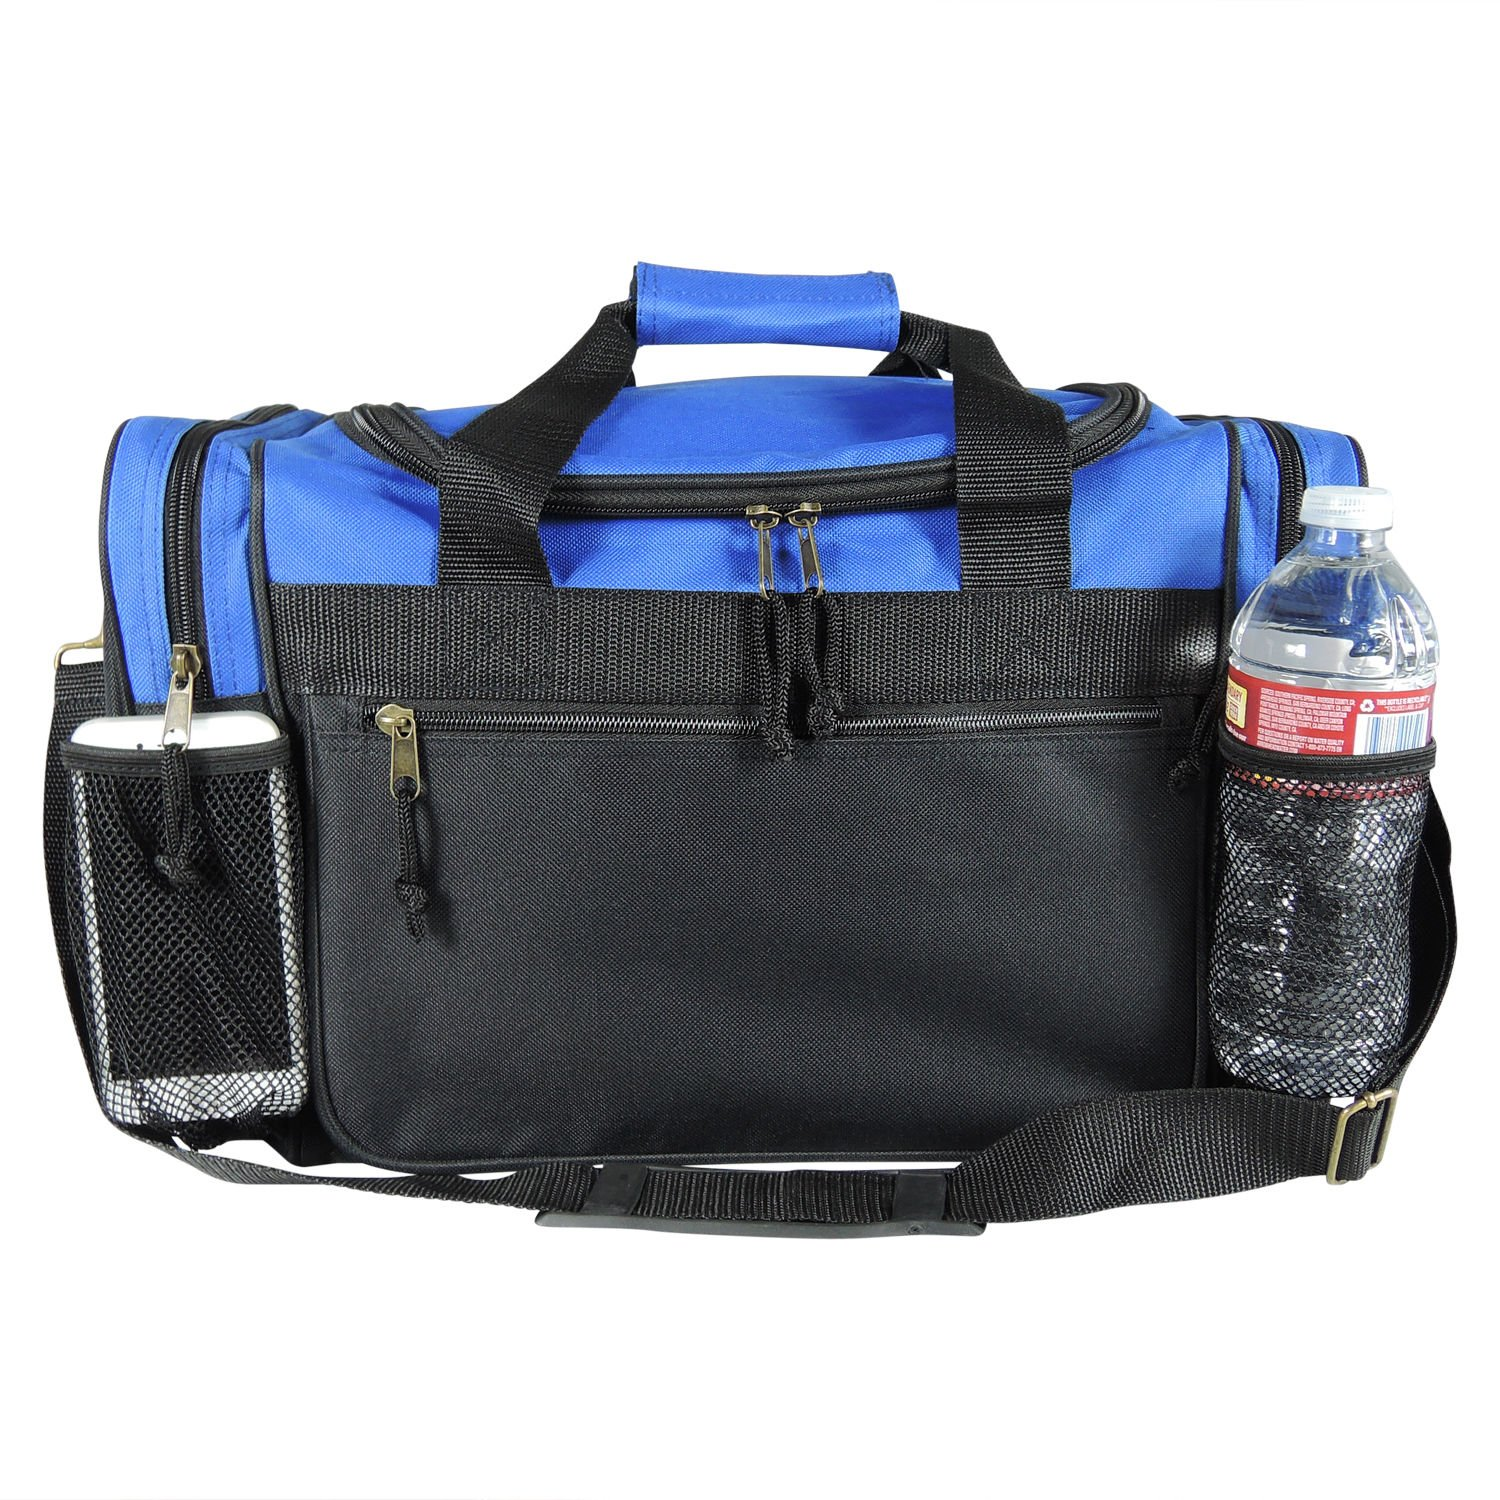 ProEquip 17'' Carry on Travel Size Sport Luggage (Royal)